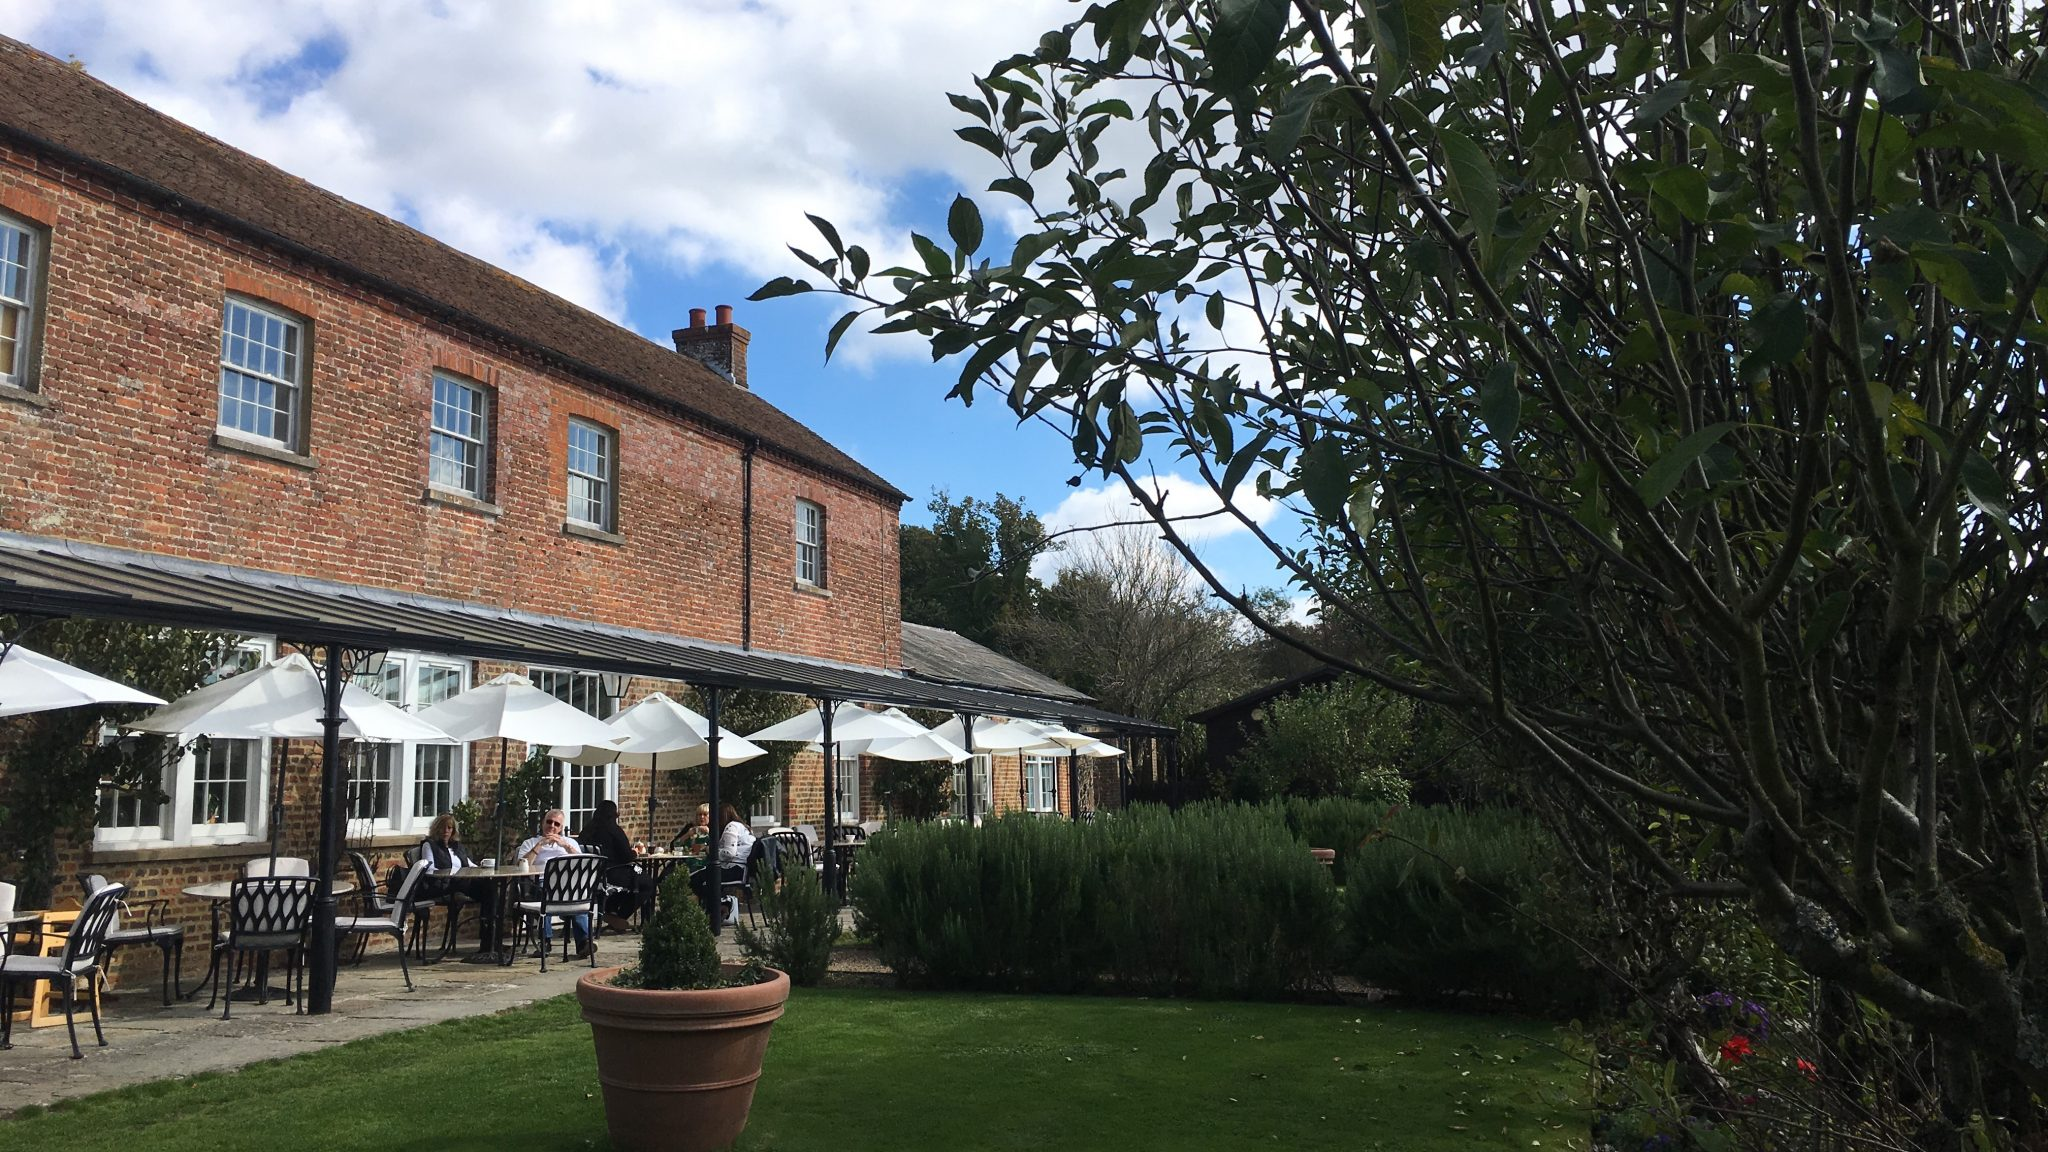 Secret Garden Kent: Restaurant review for Brunch